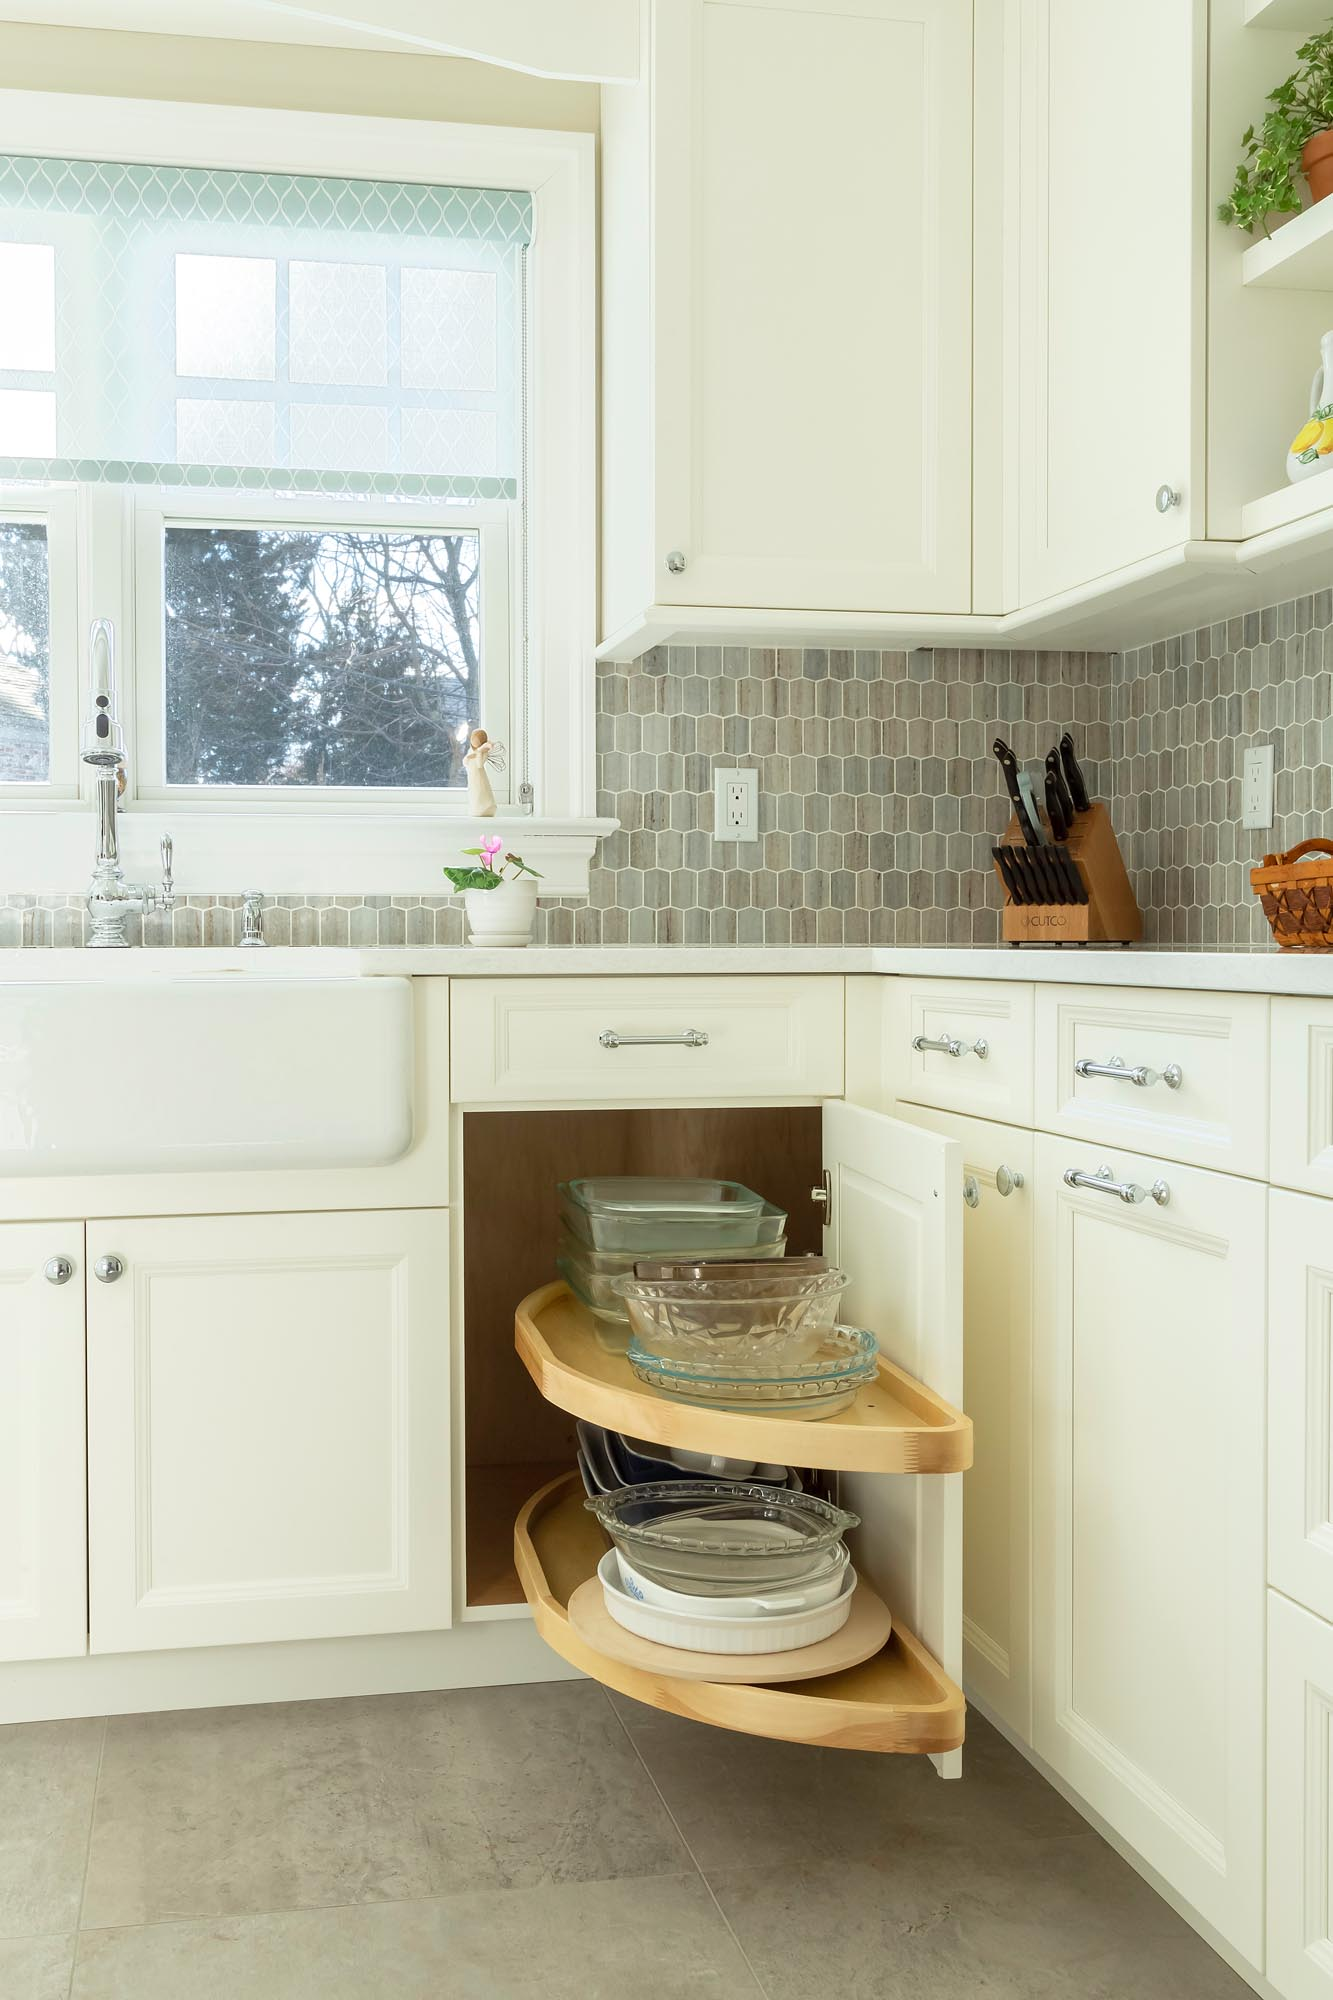 Lazy Susan pull out shelves